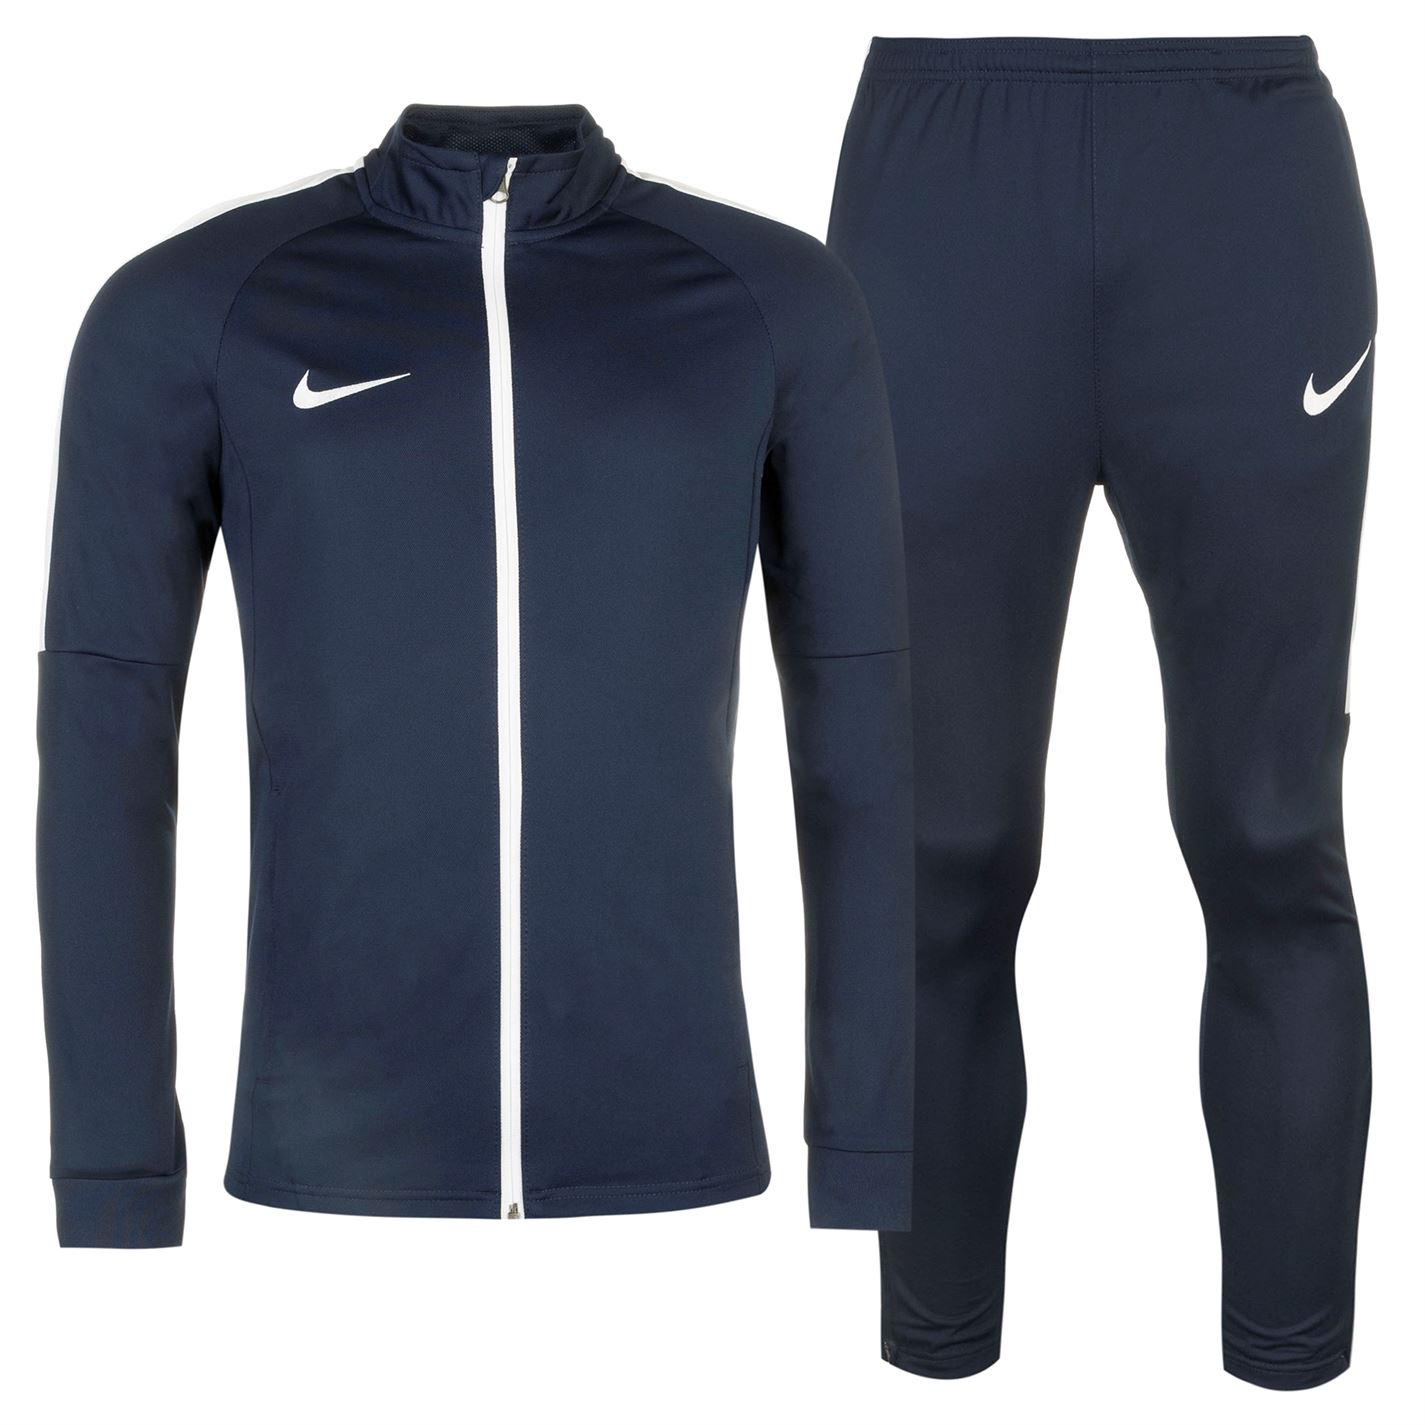 Nike Academy Warm Up Tracksuit Mens Navy - Glami.sk 4d0ed9175db